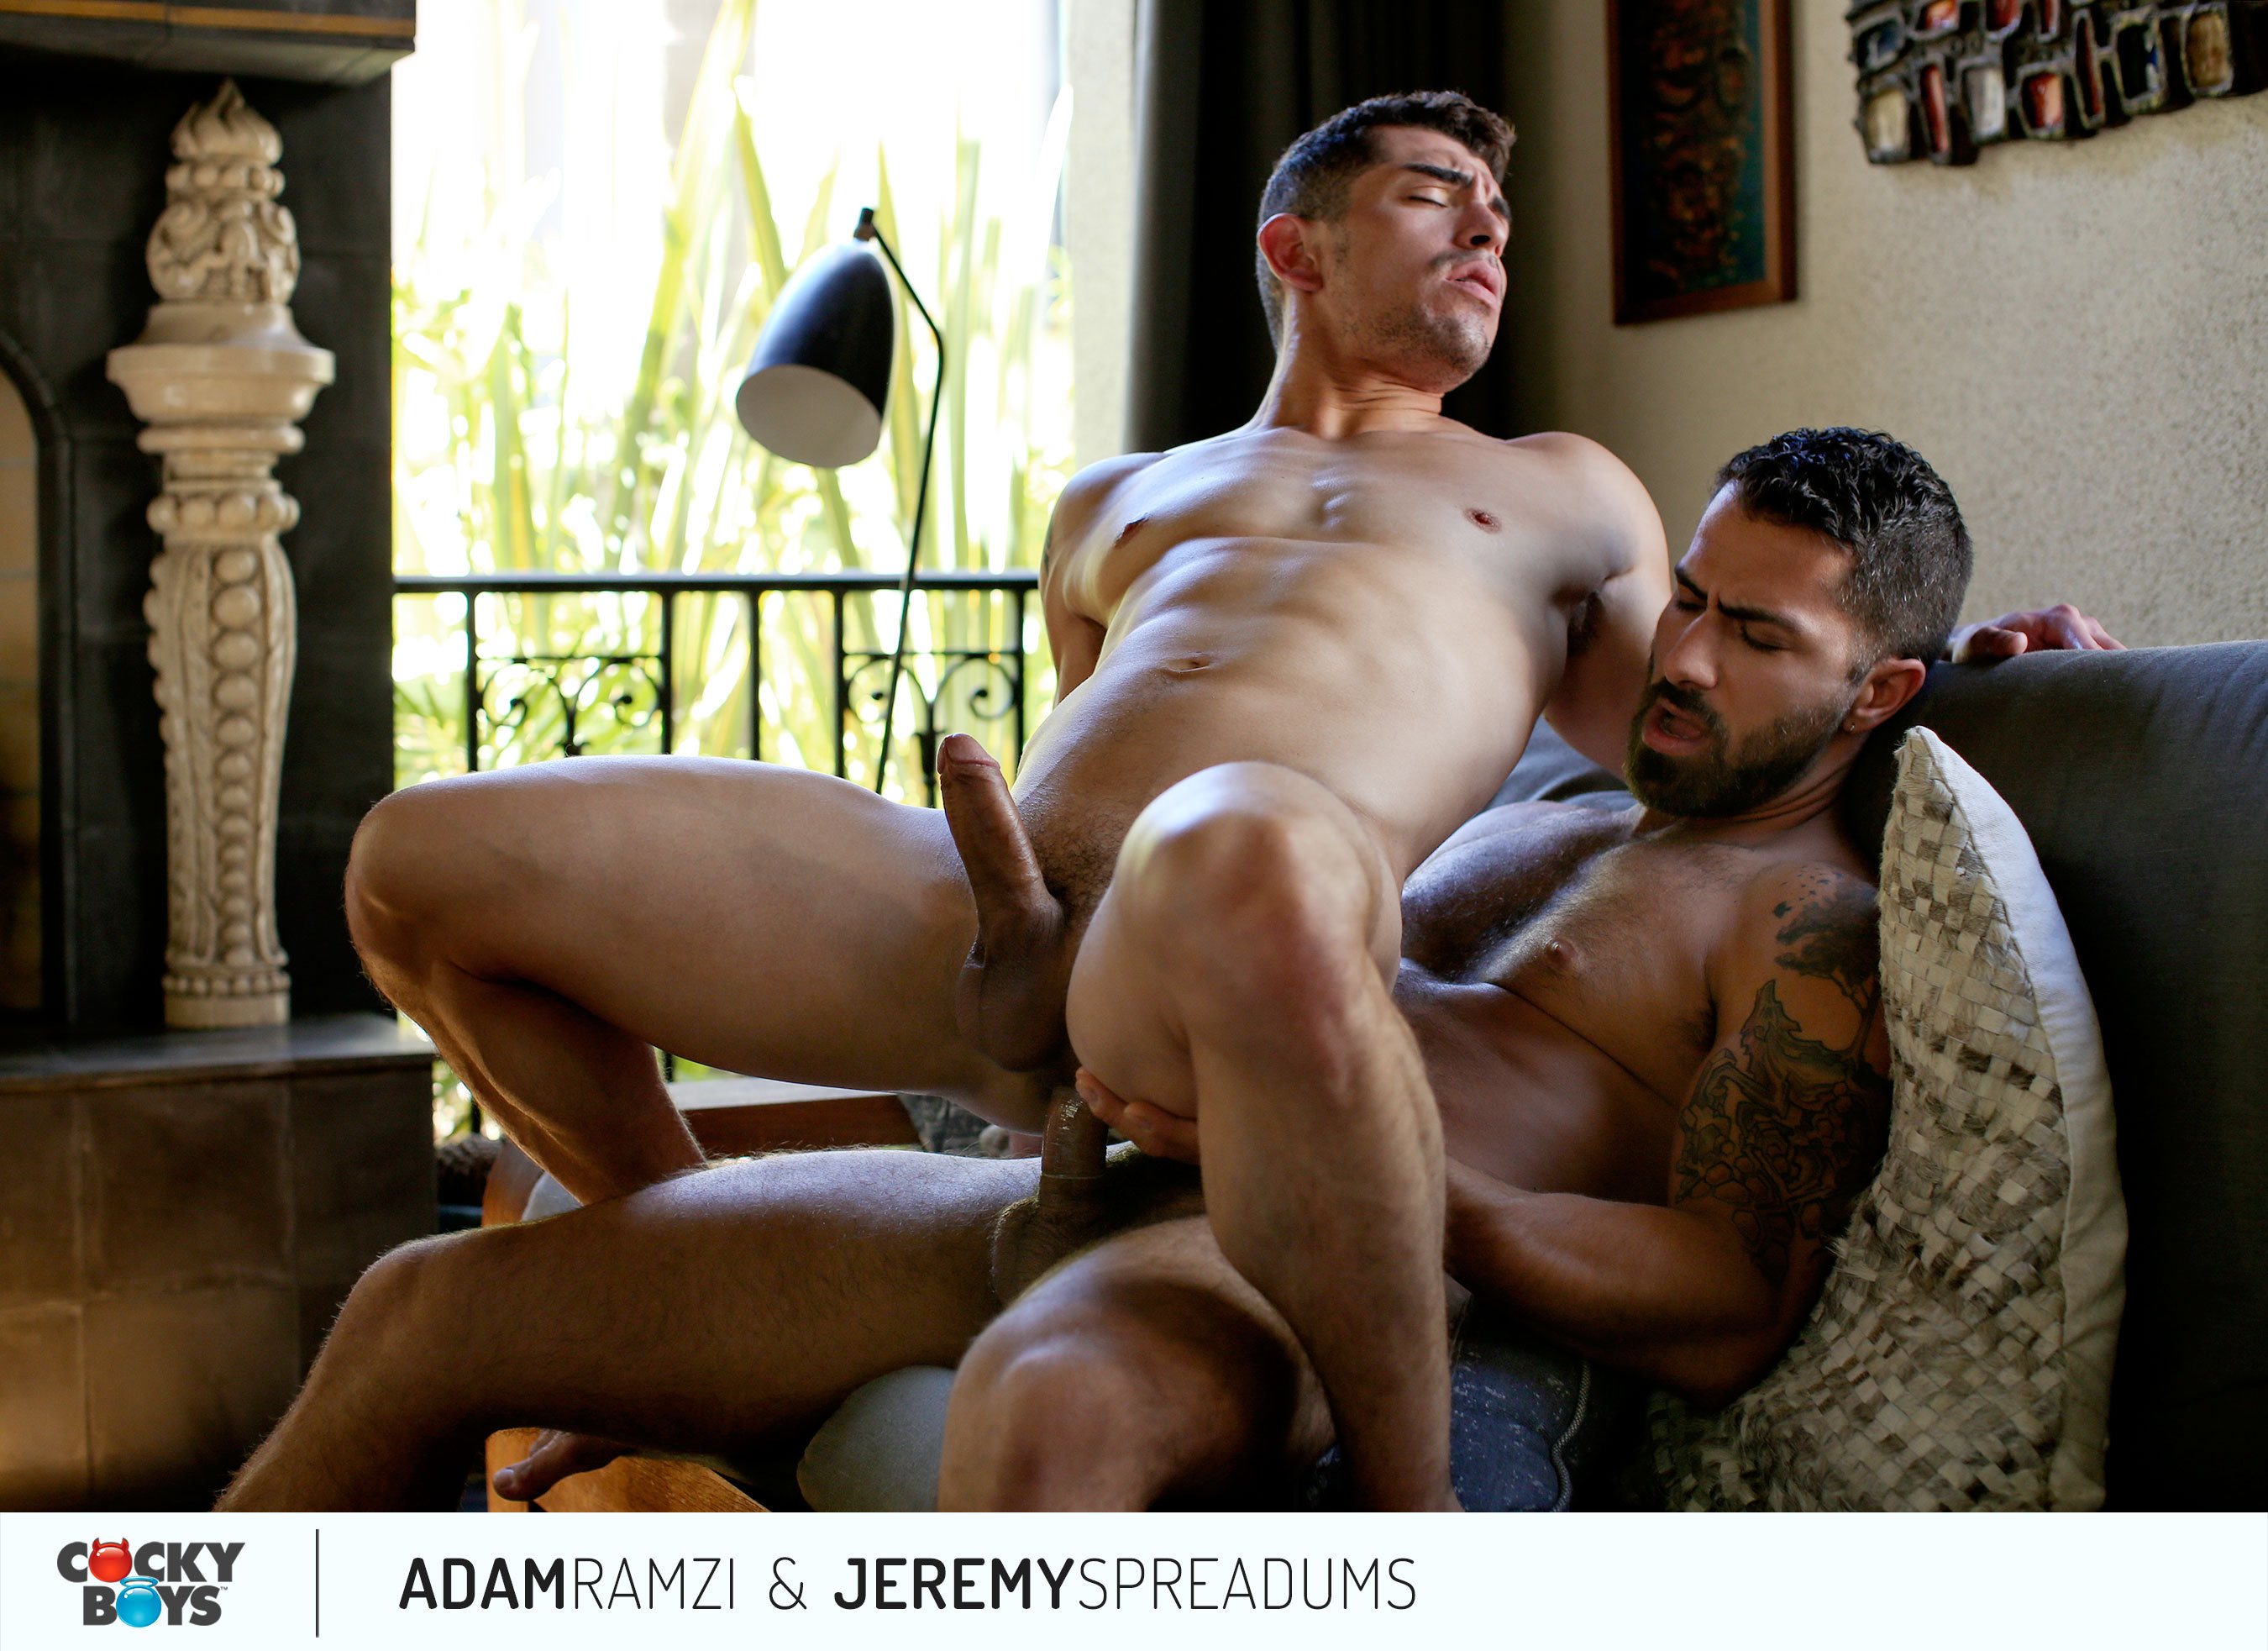 image Men playing with each others dicks gay xxx